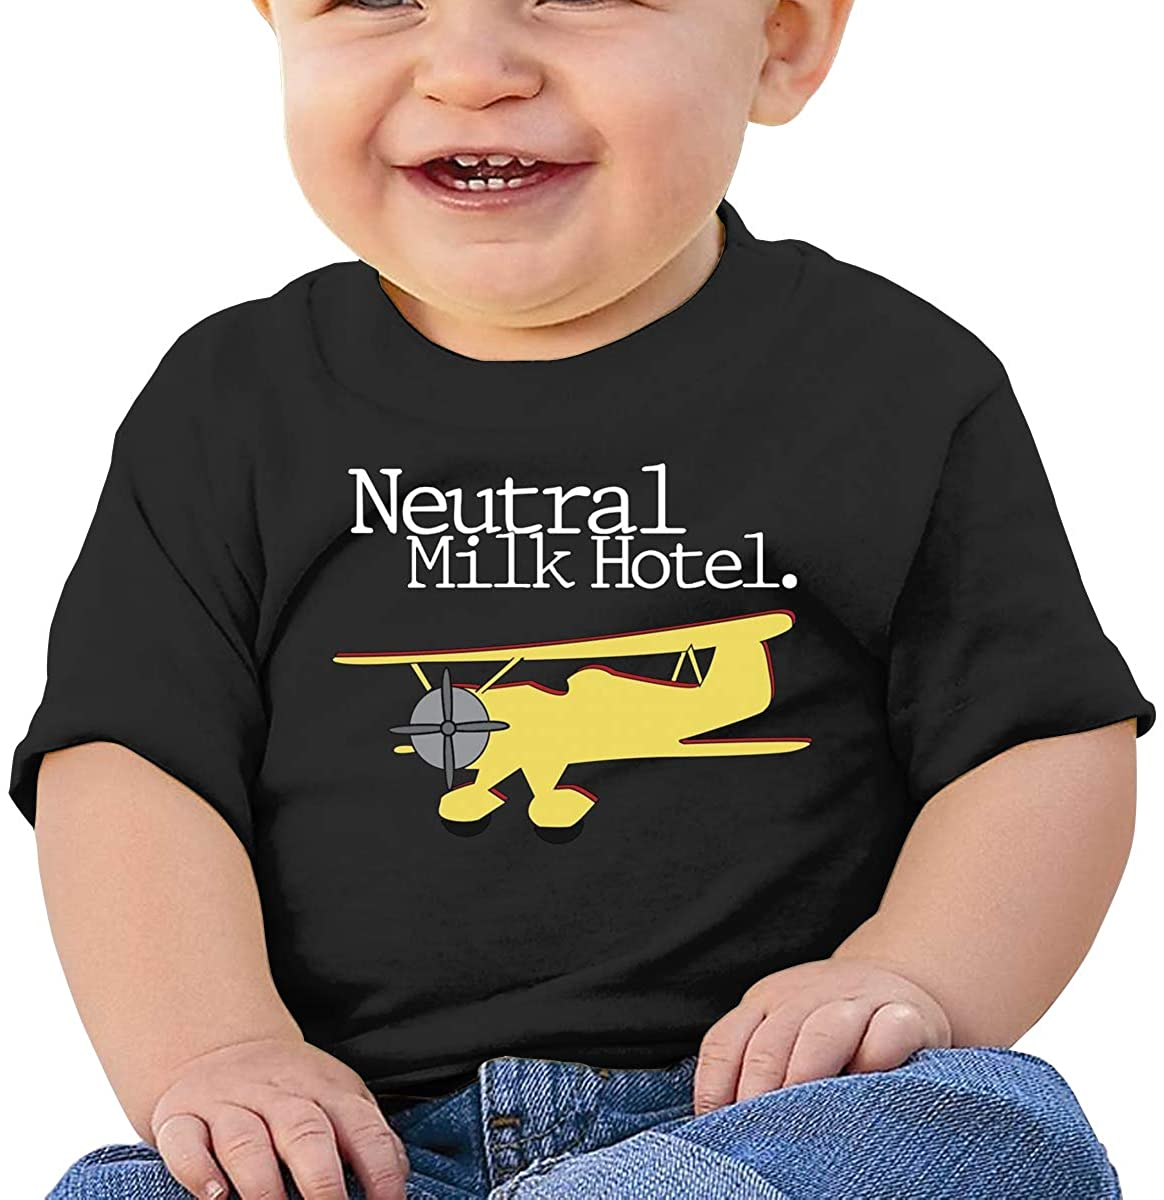 6-24 Months Boy and Girl Baby Short Sleeve T-Shirt Neutral Milk Hotel Original Minimalist Style Black